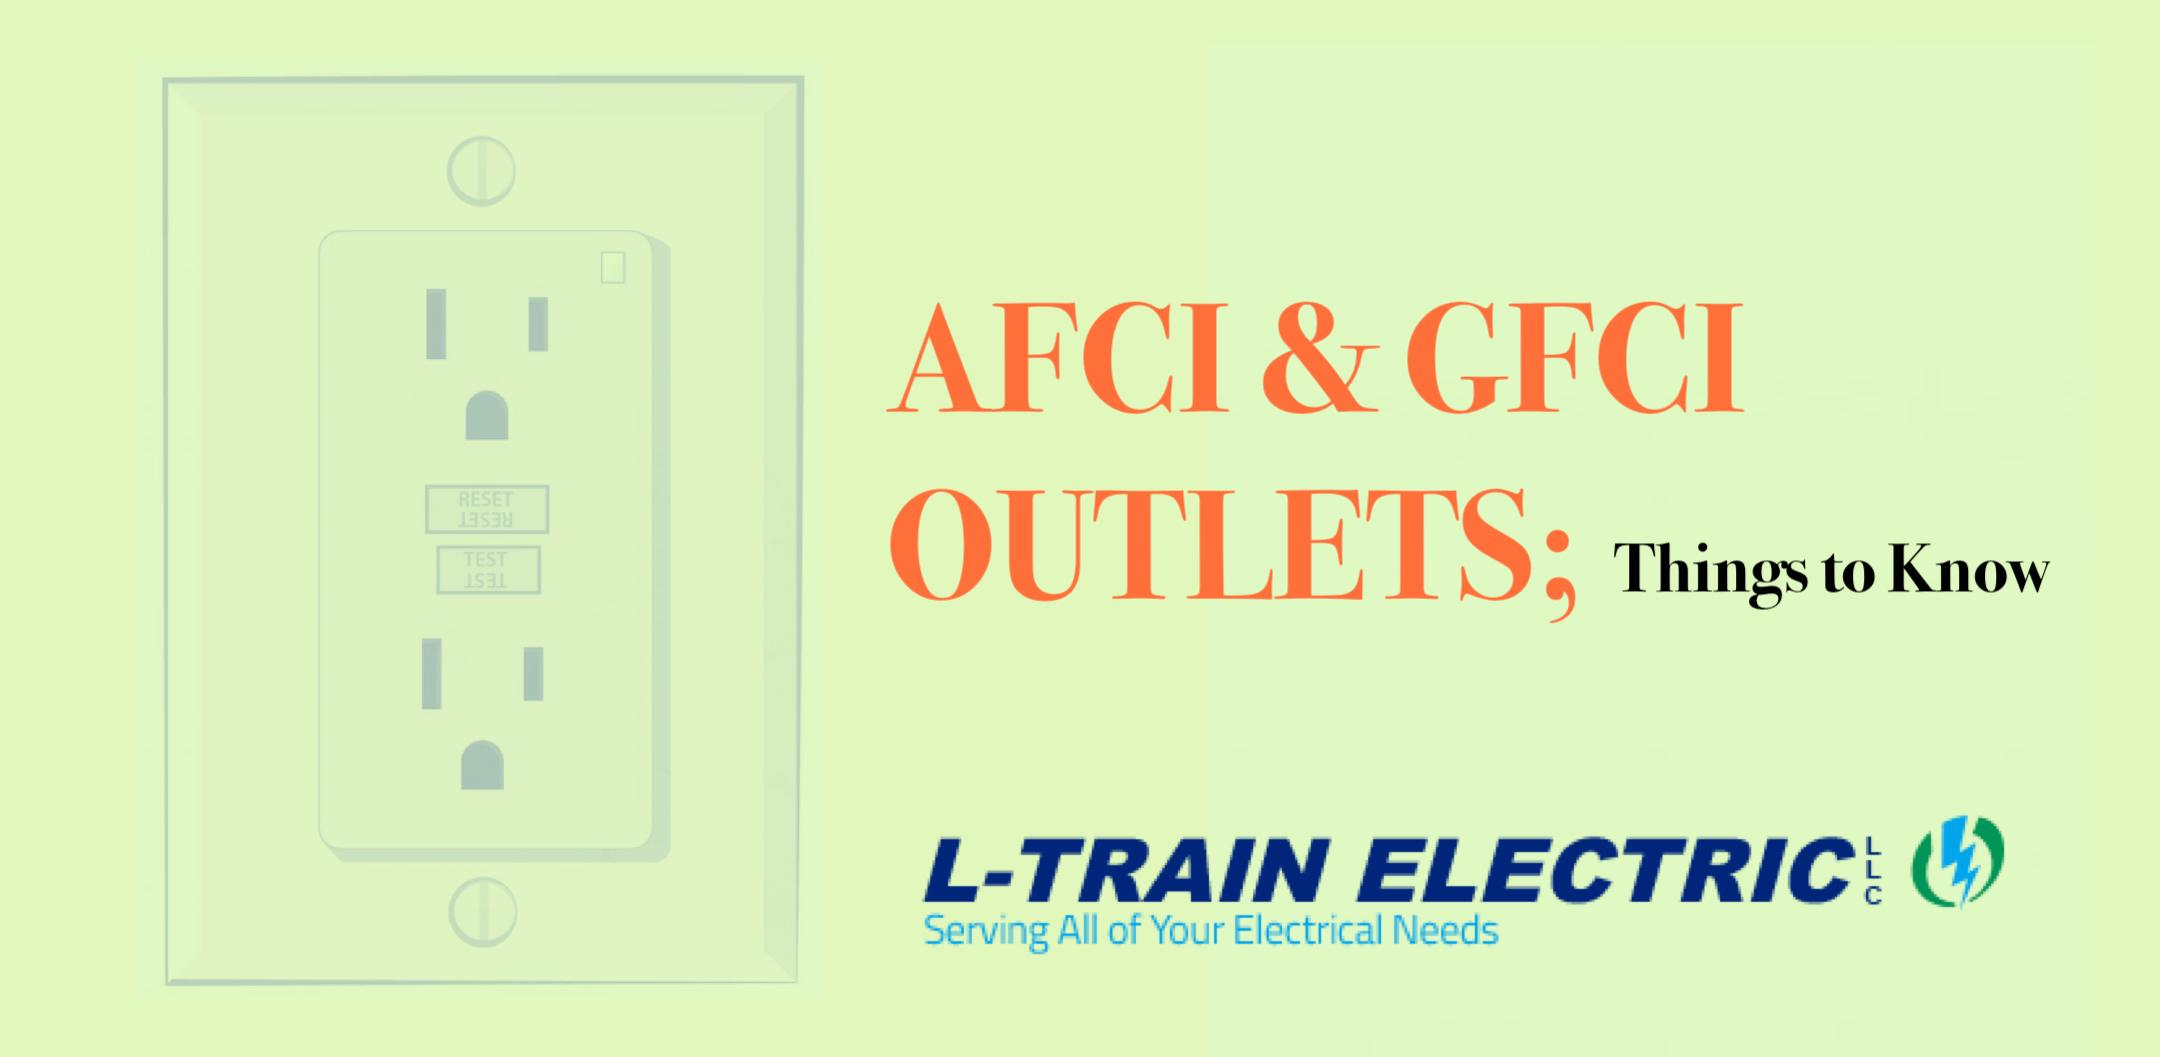 afci and gfci outlets